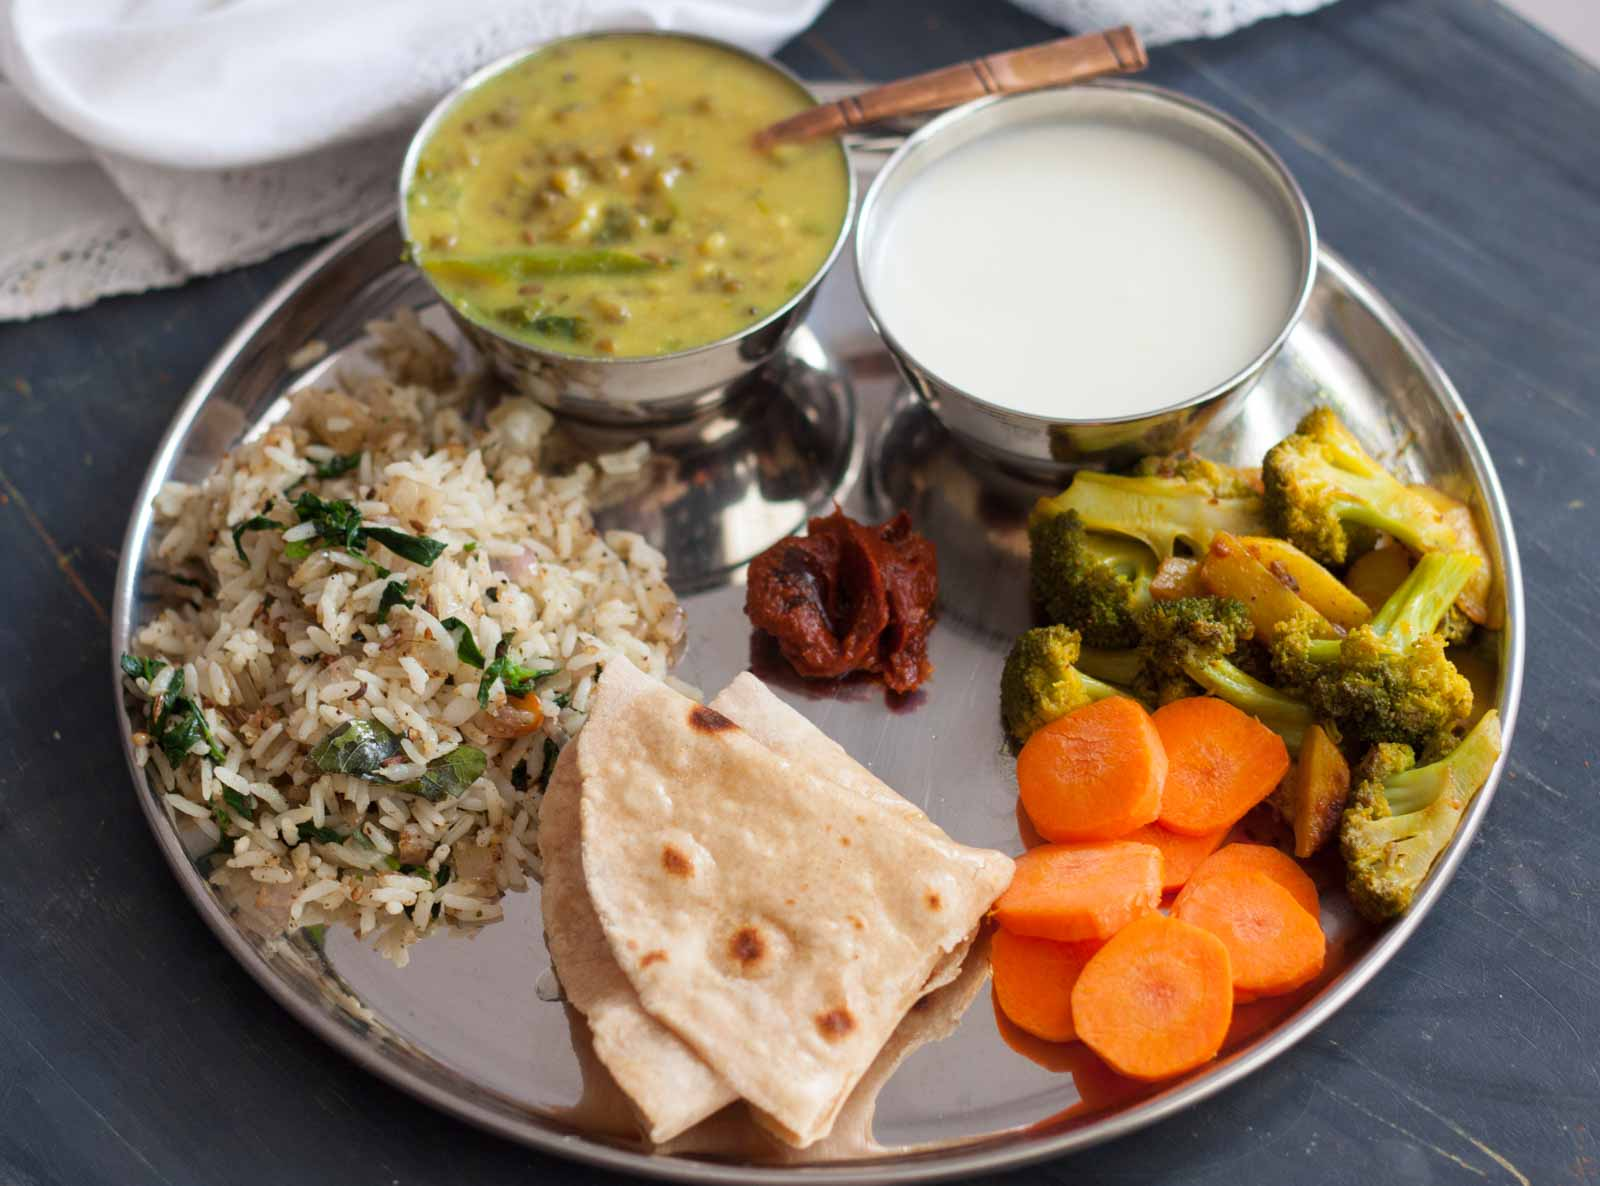 Everyday meal ideas by archanas kitchen everyday meal plate sattvik recipes with green mung bean dal broccoli stir fry forumfinder Gallery